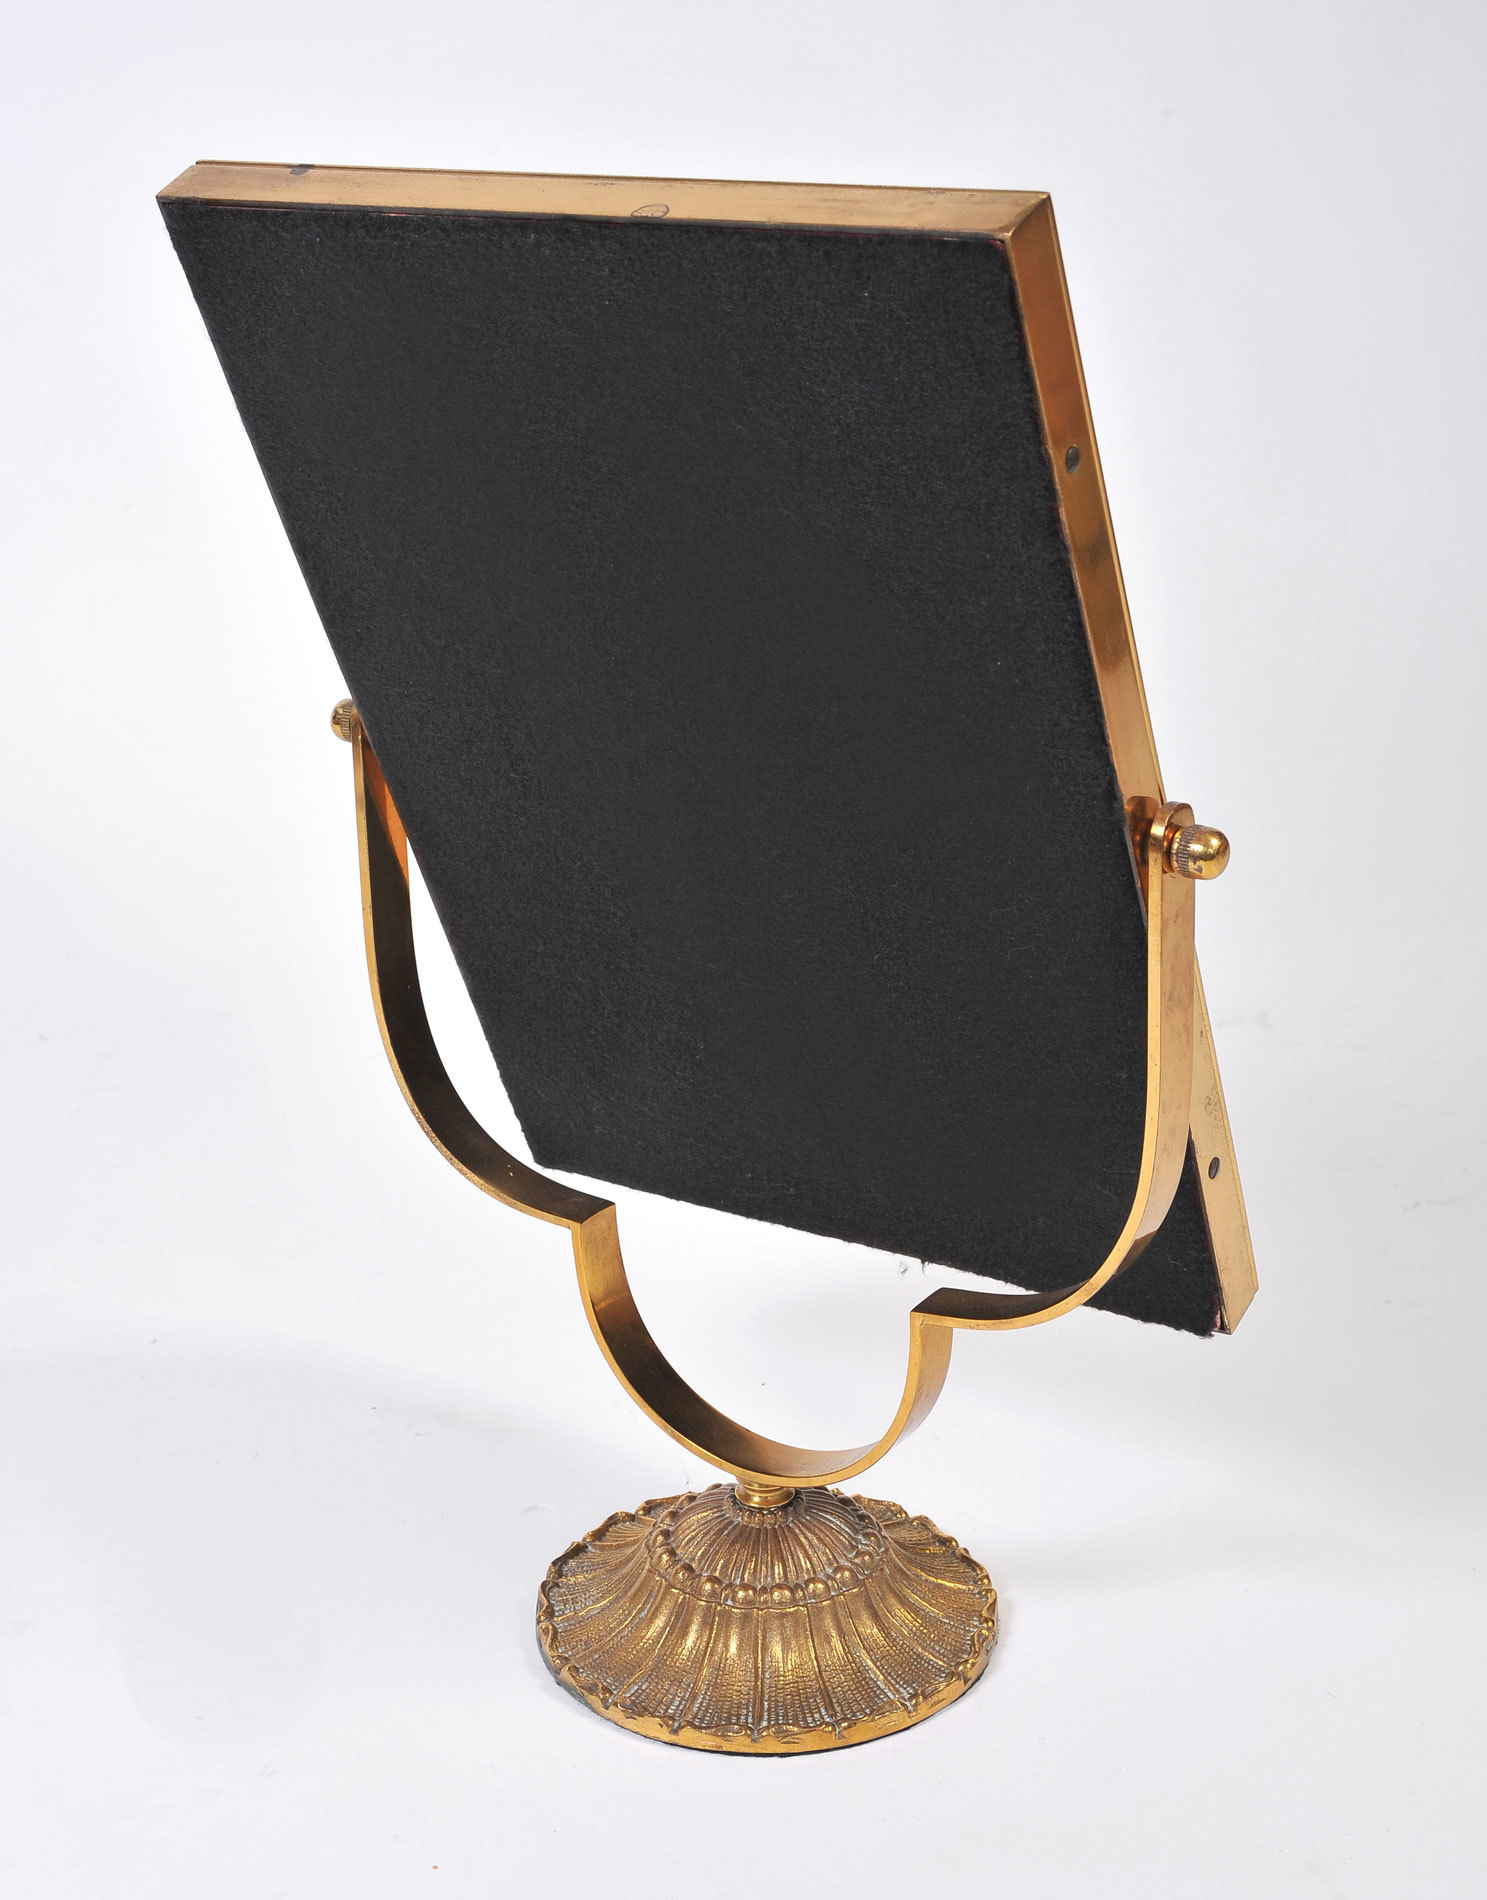 The image for Rectangular Brass Table Mirror 04